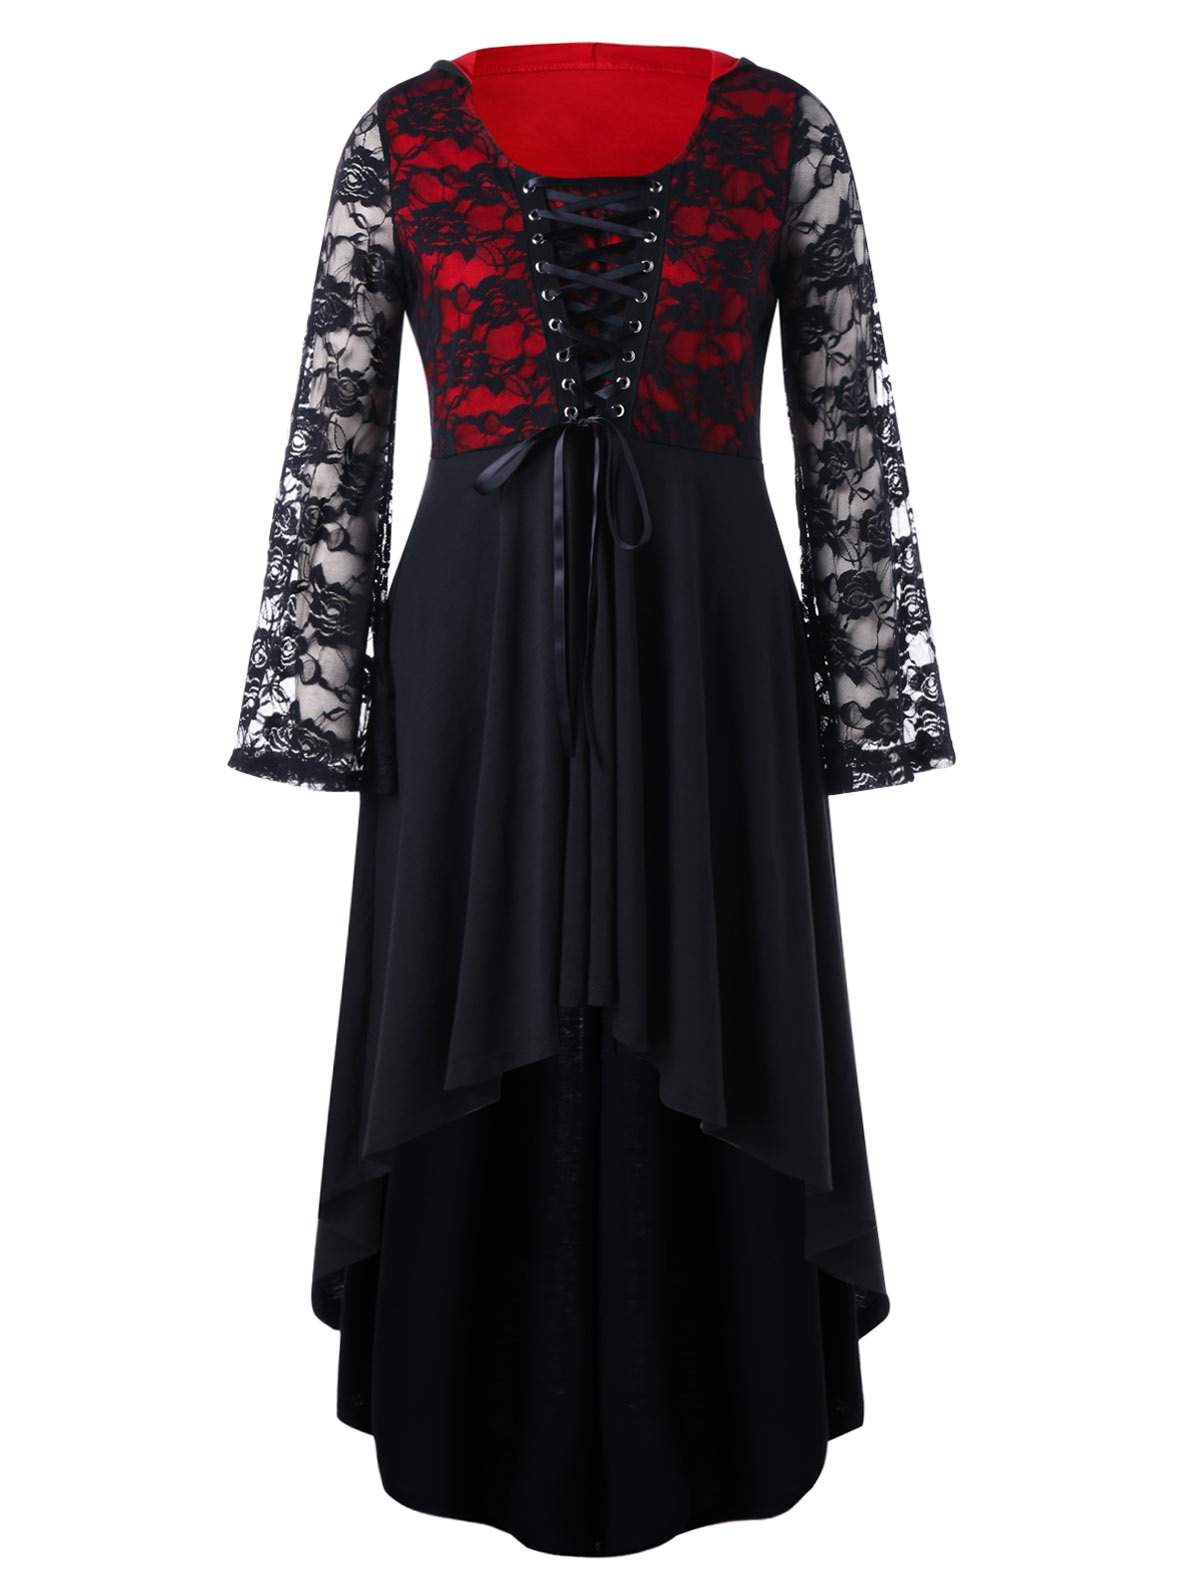 Plus Size Lace Up Gothic High Low Dress